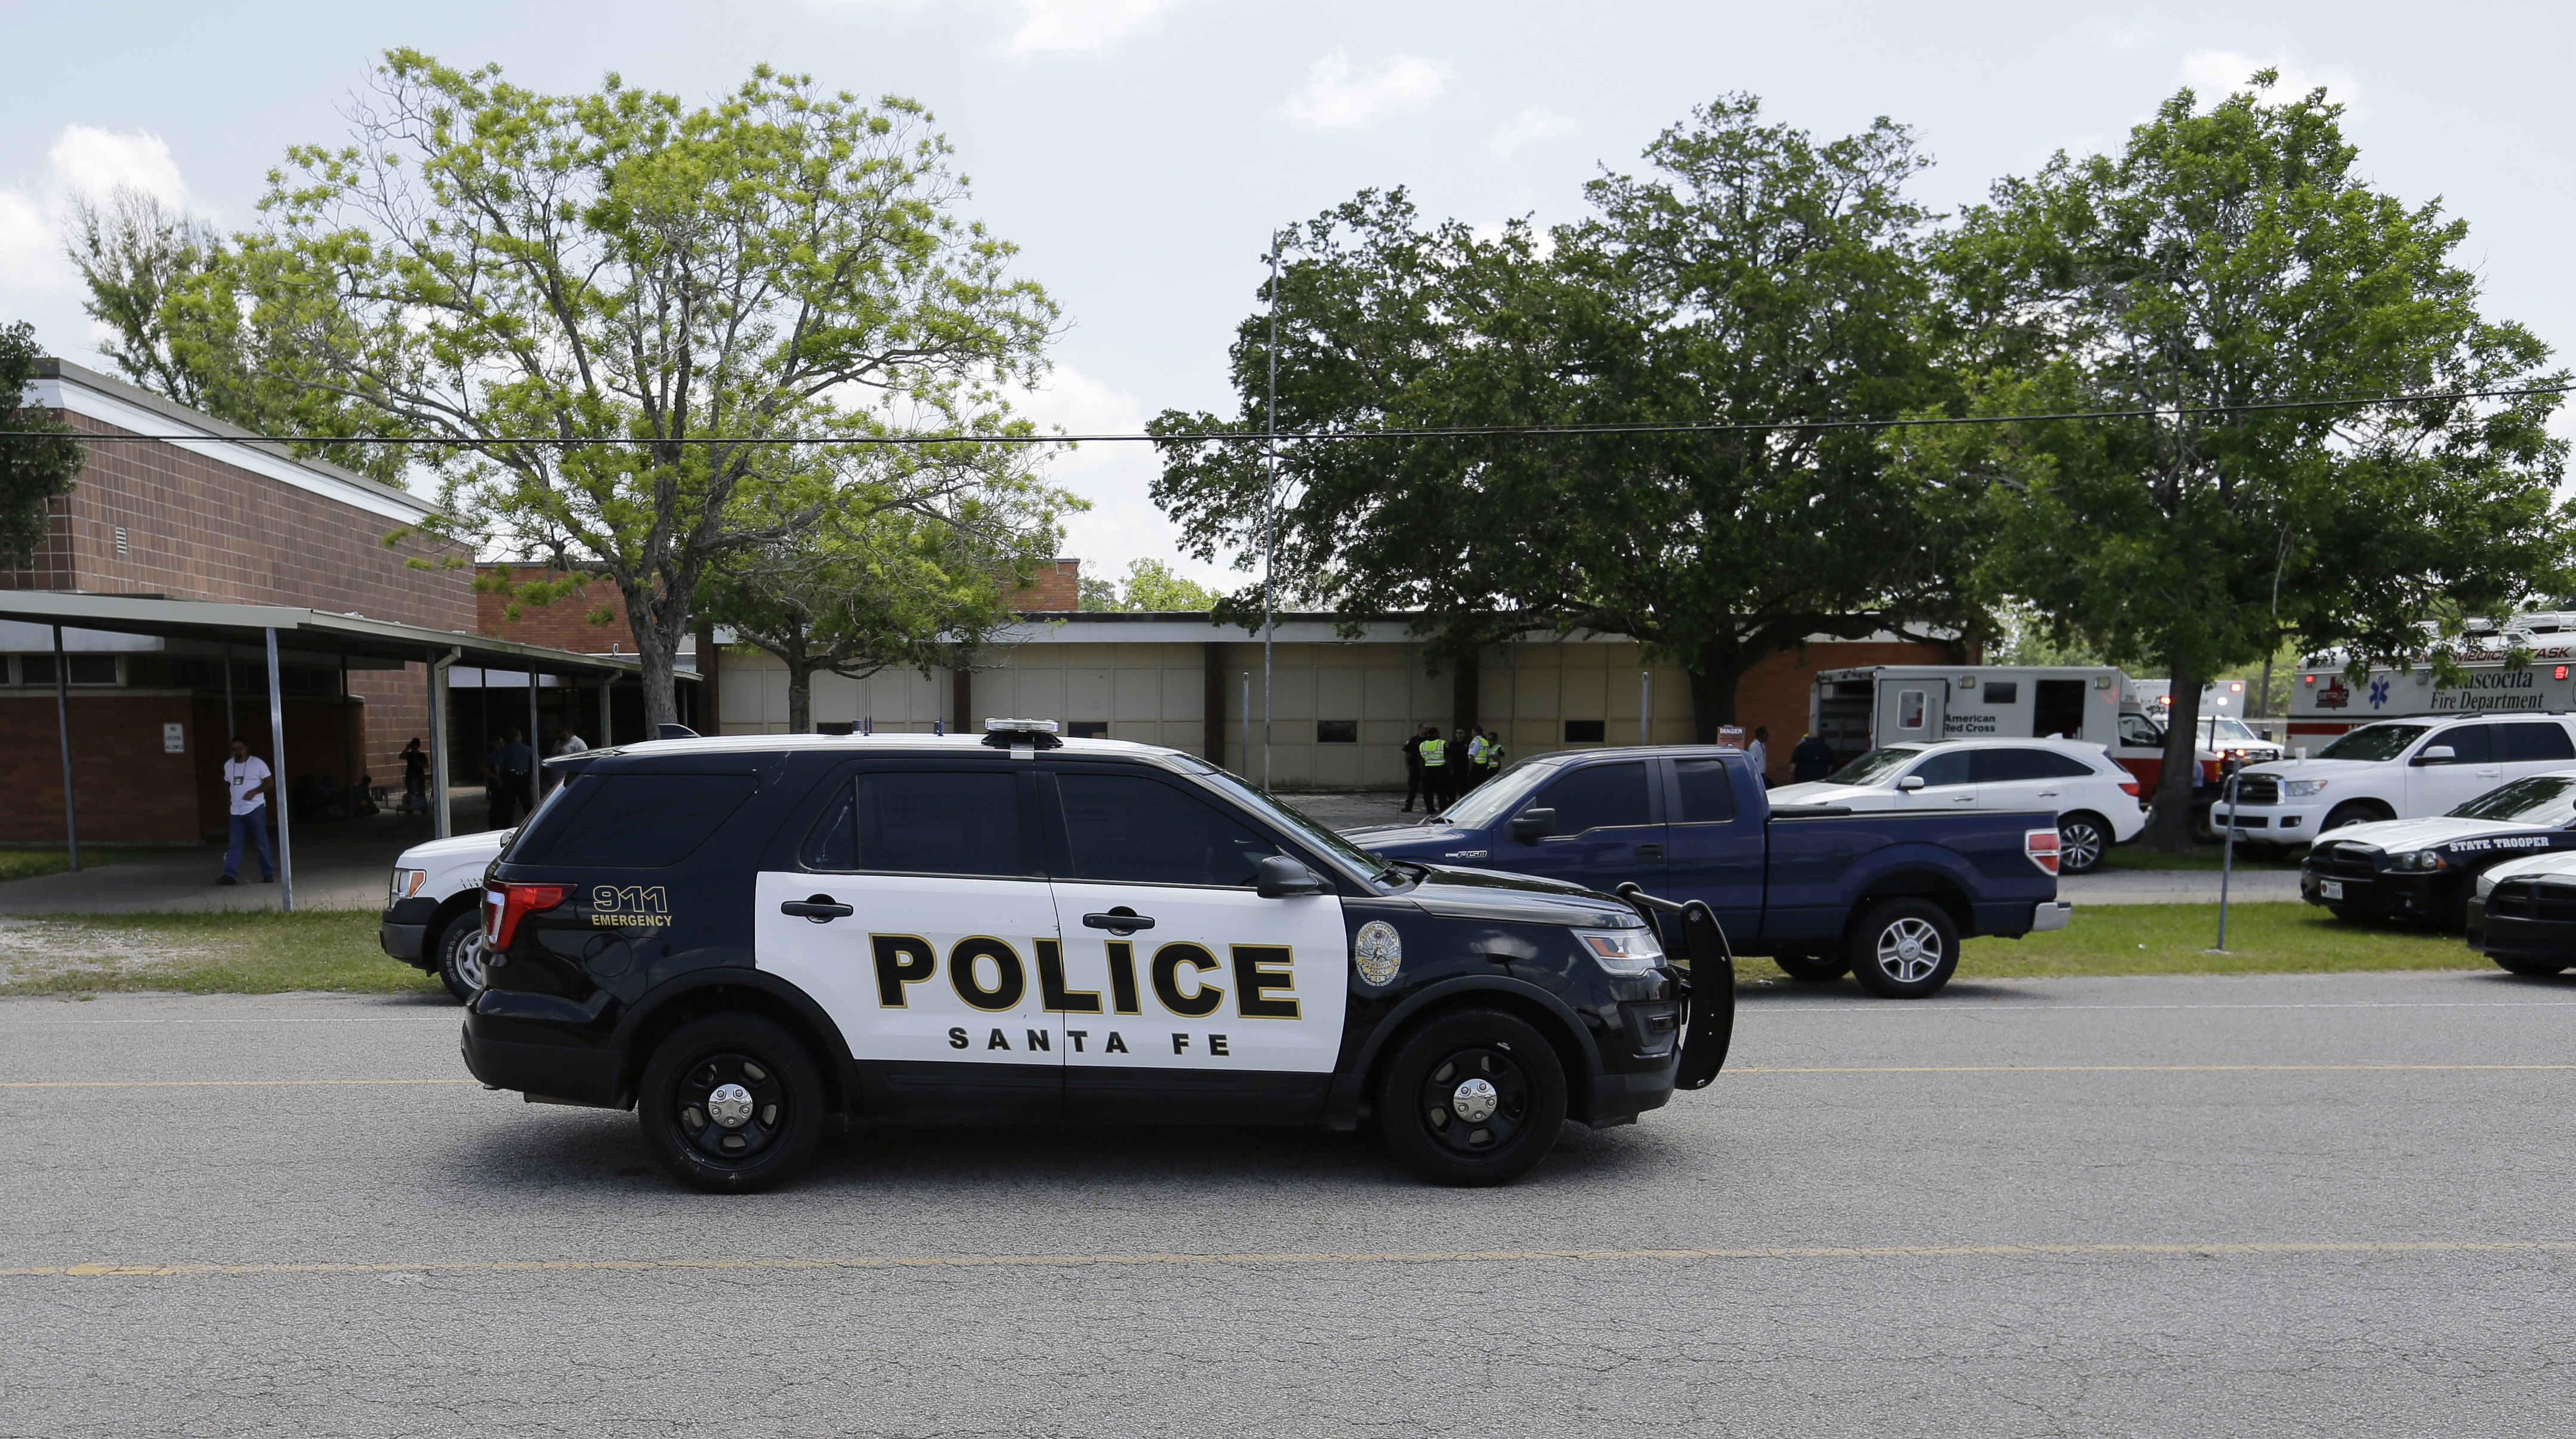 <div class='meta'><div class='origin-logo' data-origin='AP'></div><span class='caption-text' data-credit='AP'>Police cars are parked outside the Alamo Gym where students and parents wait to reunite following a shooting at Santa Fe High School, May 18, 2018. (AP Photo/David J. Phillip)</span></div>